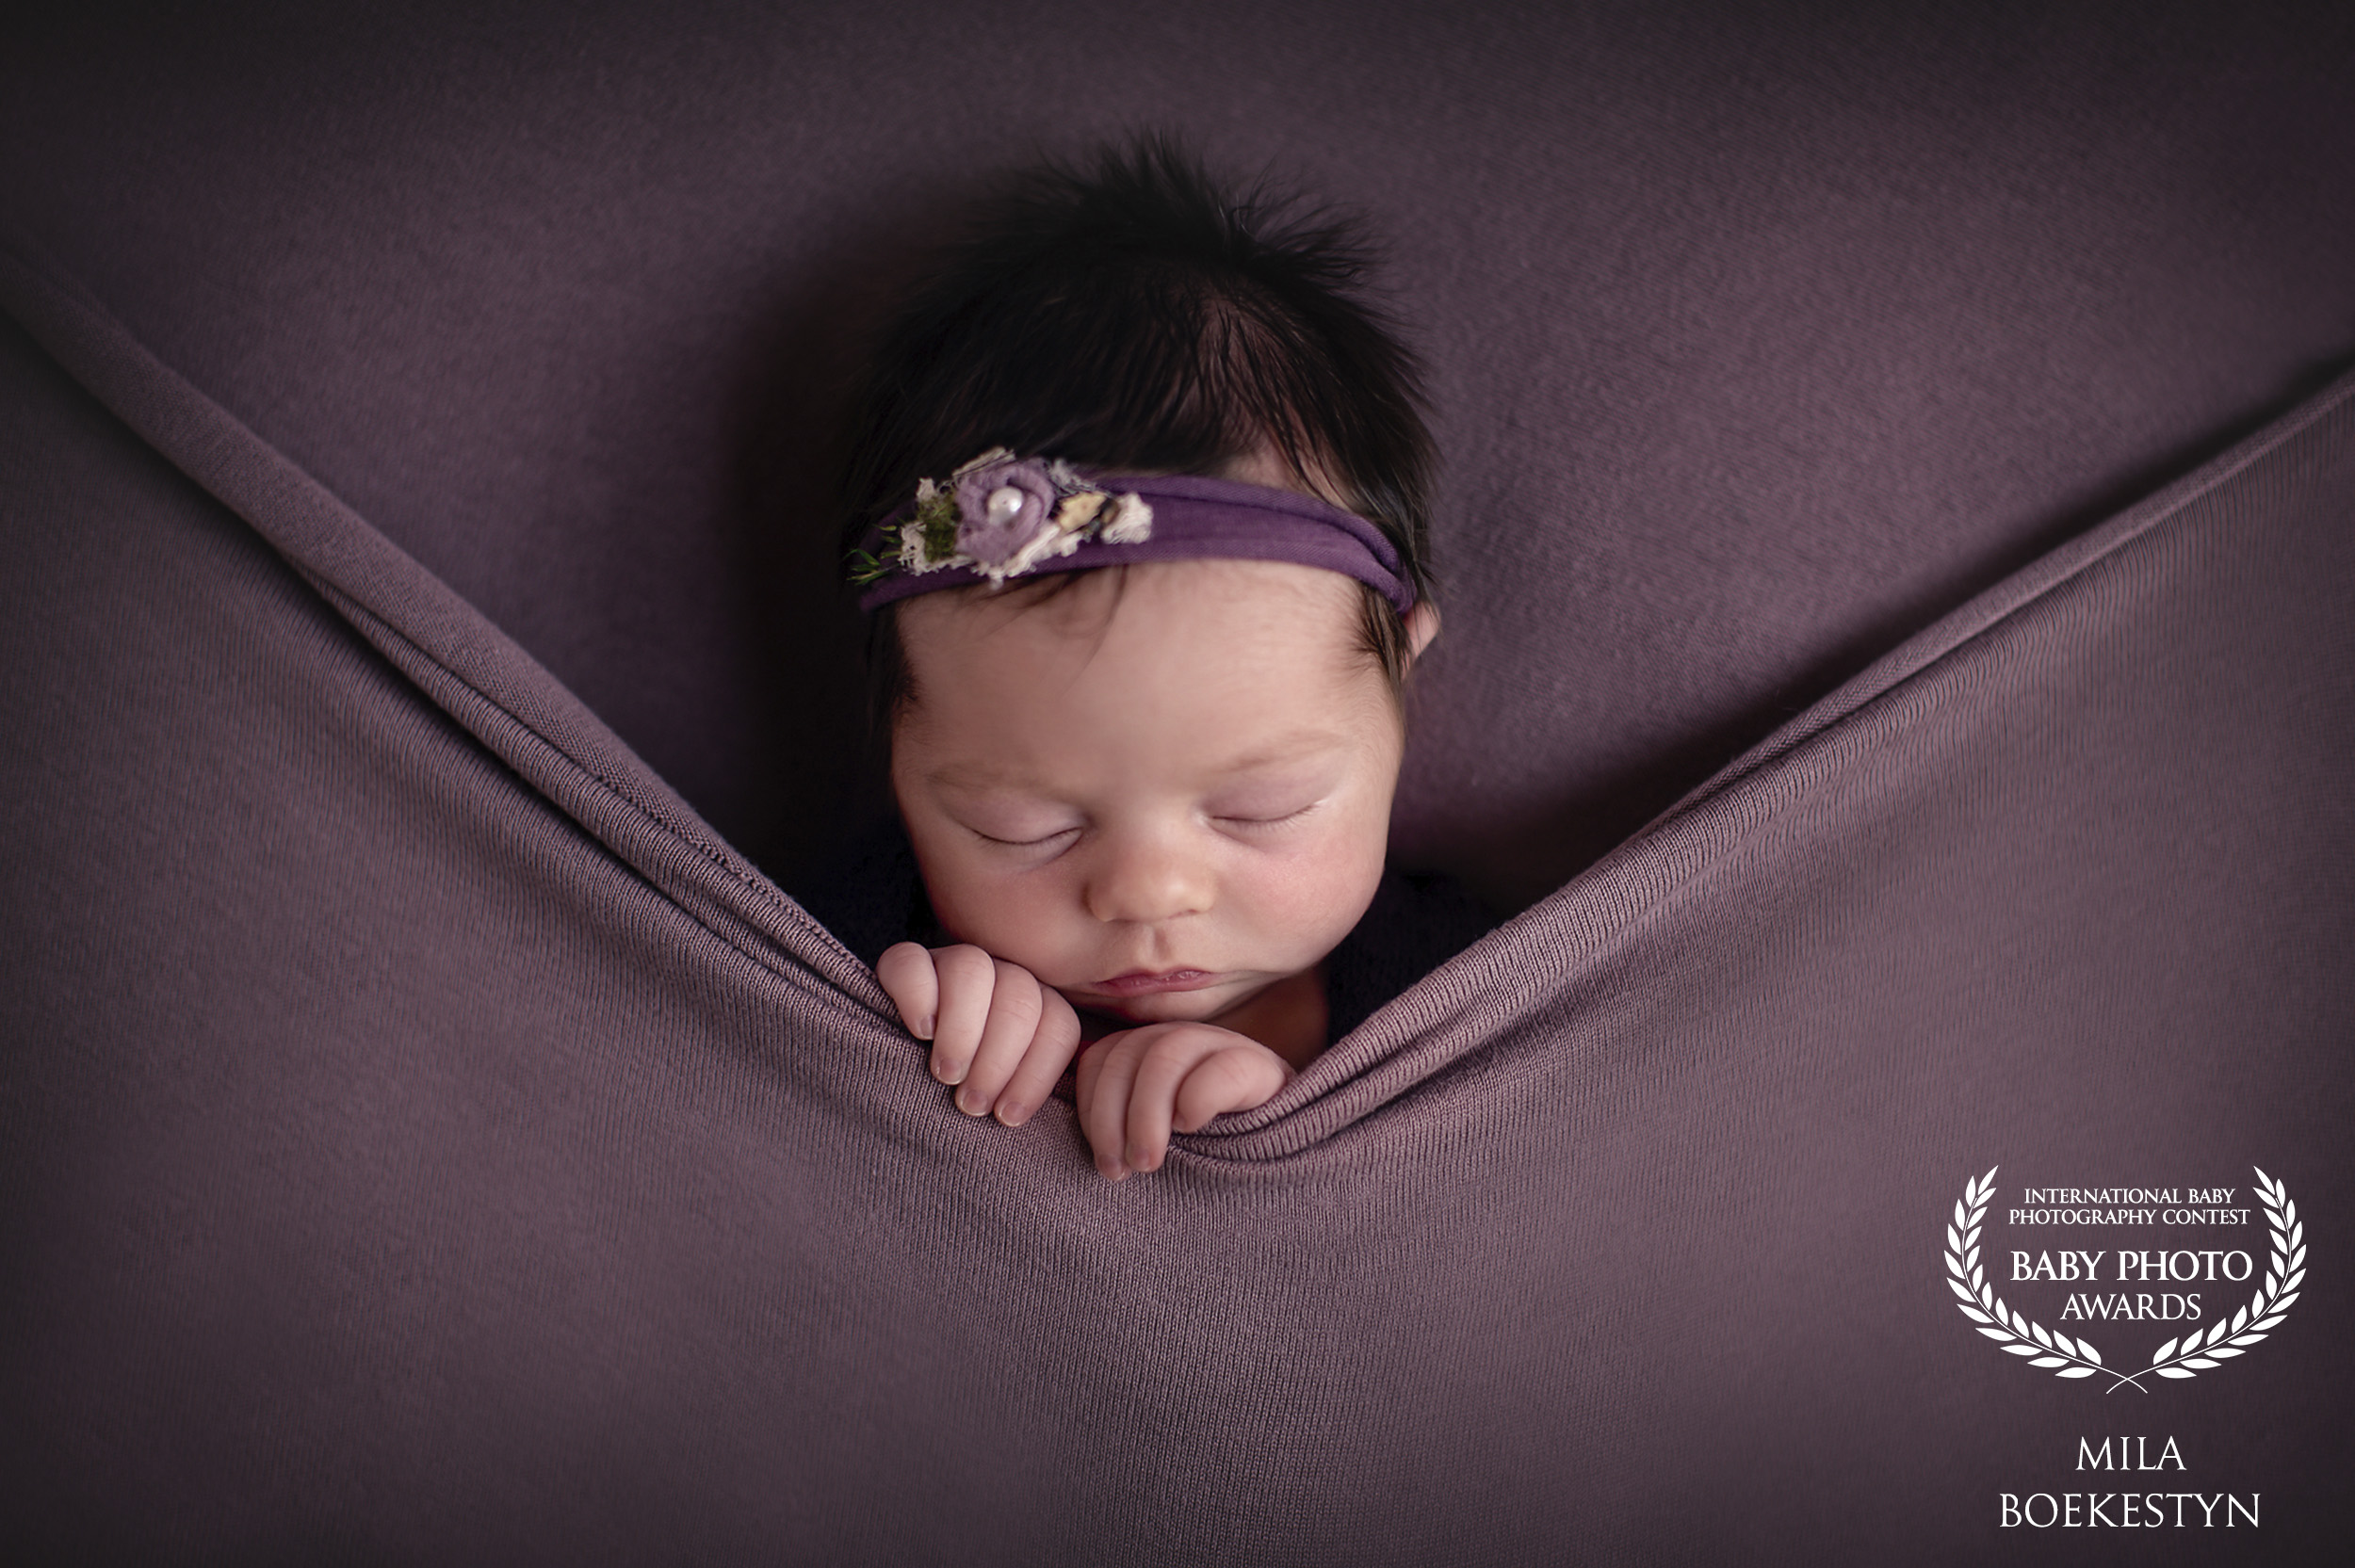 custom_logo_MILA-BOEKESTYN-canada-40collection-babyphotoawards-com_1563203501.jpg